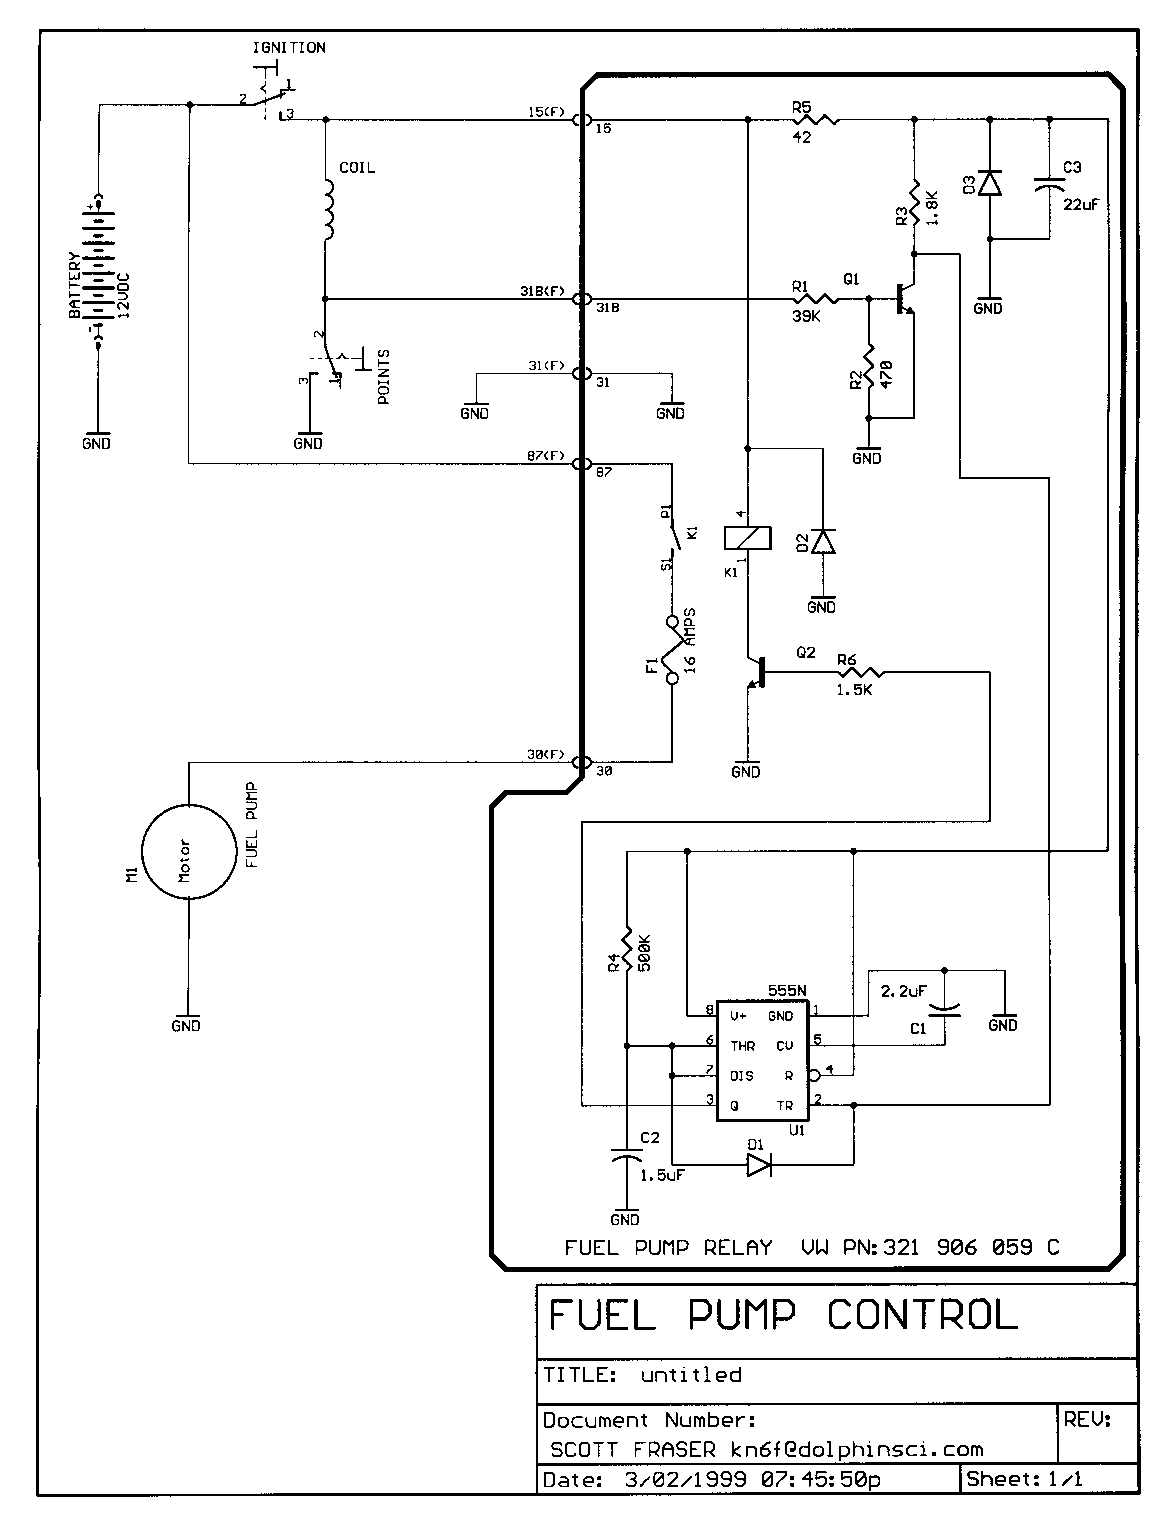 VWfuelPumpRelay thesamba com bay window bus view topic fuel pump wiring fuel pump relay wiring diagram at edmiracle.co